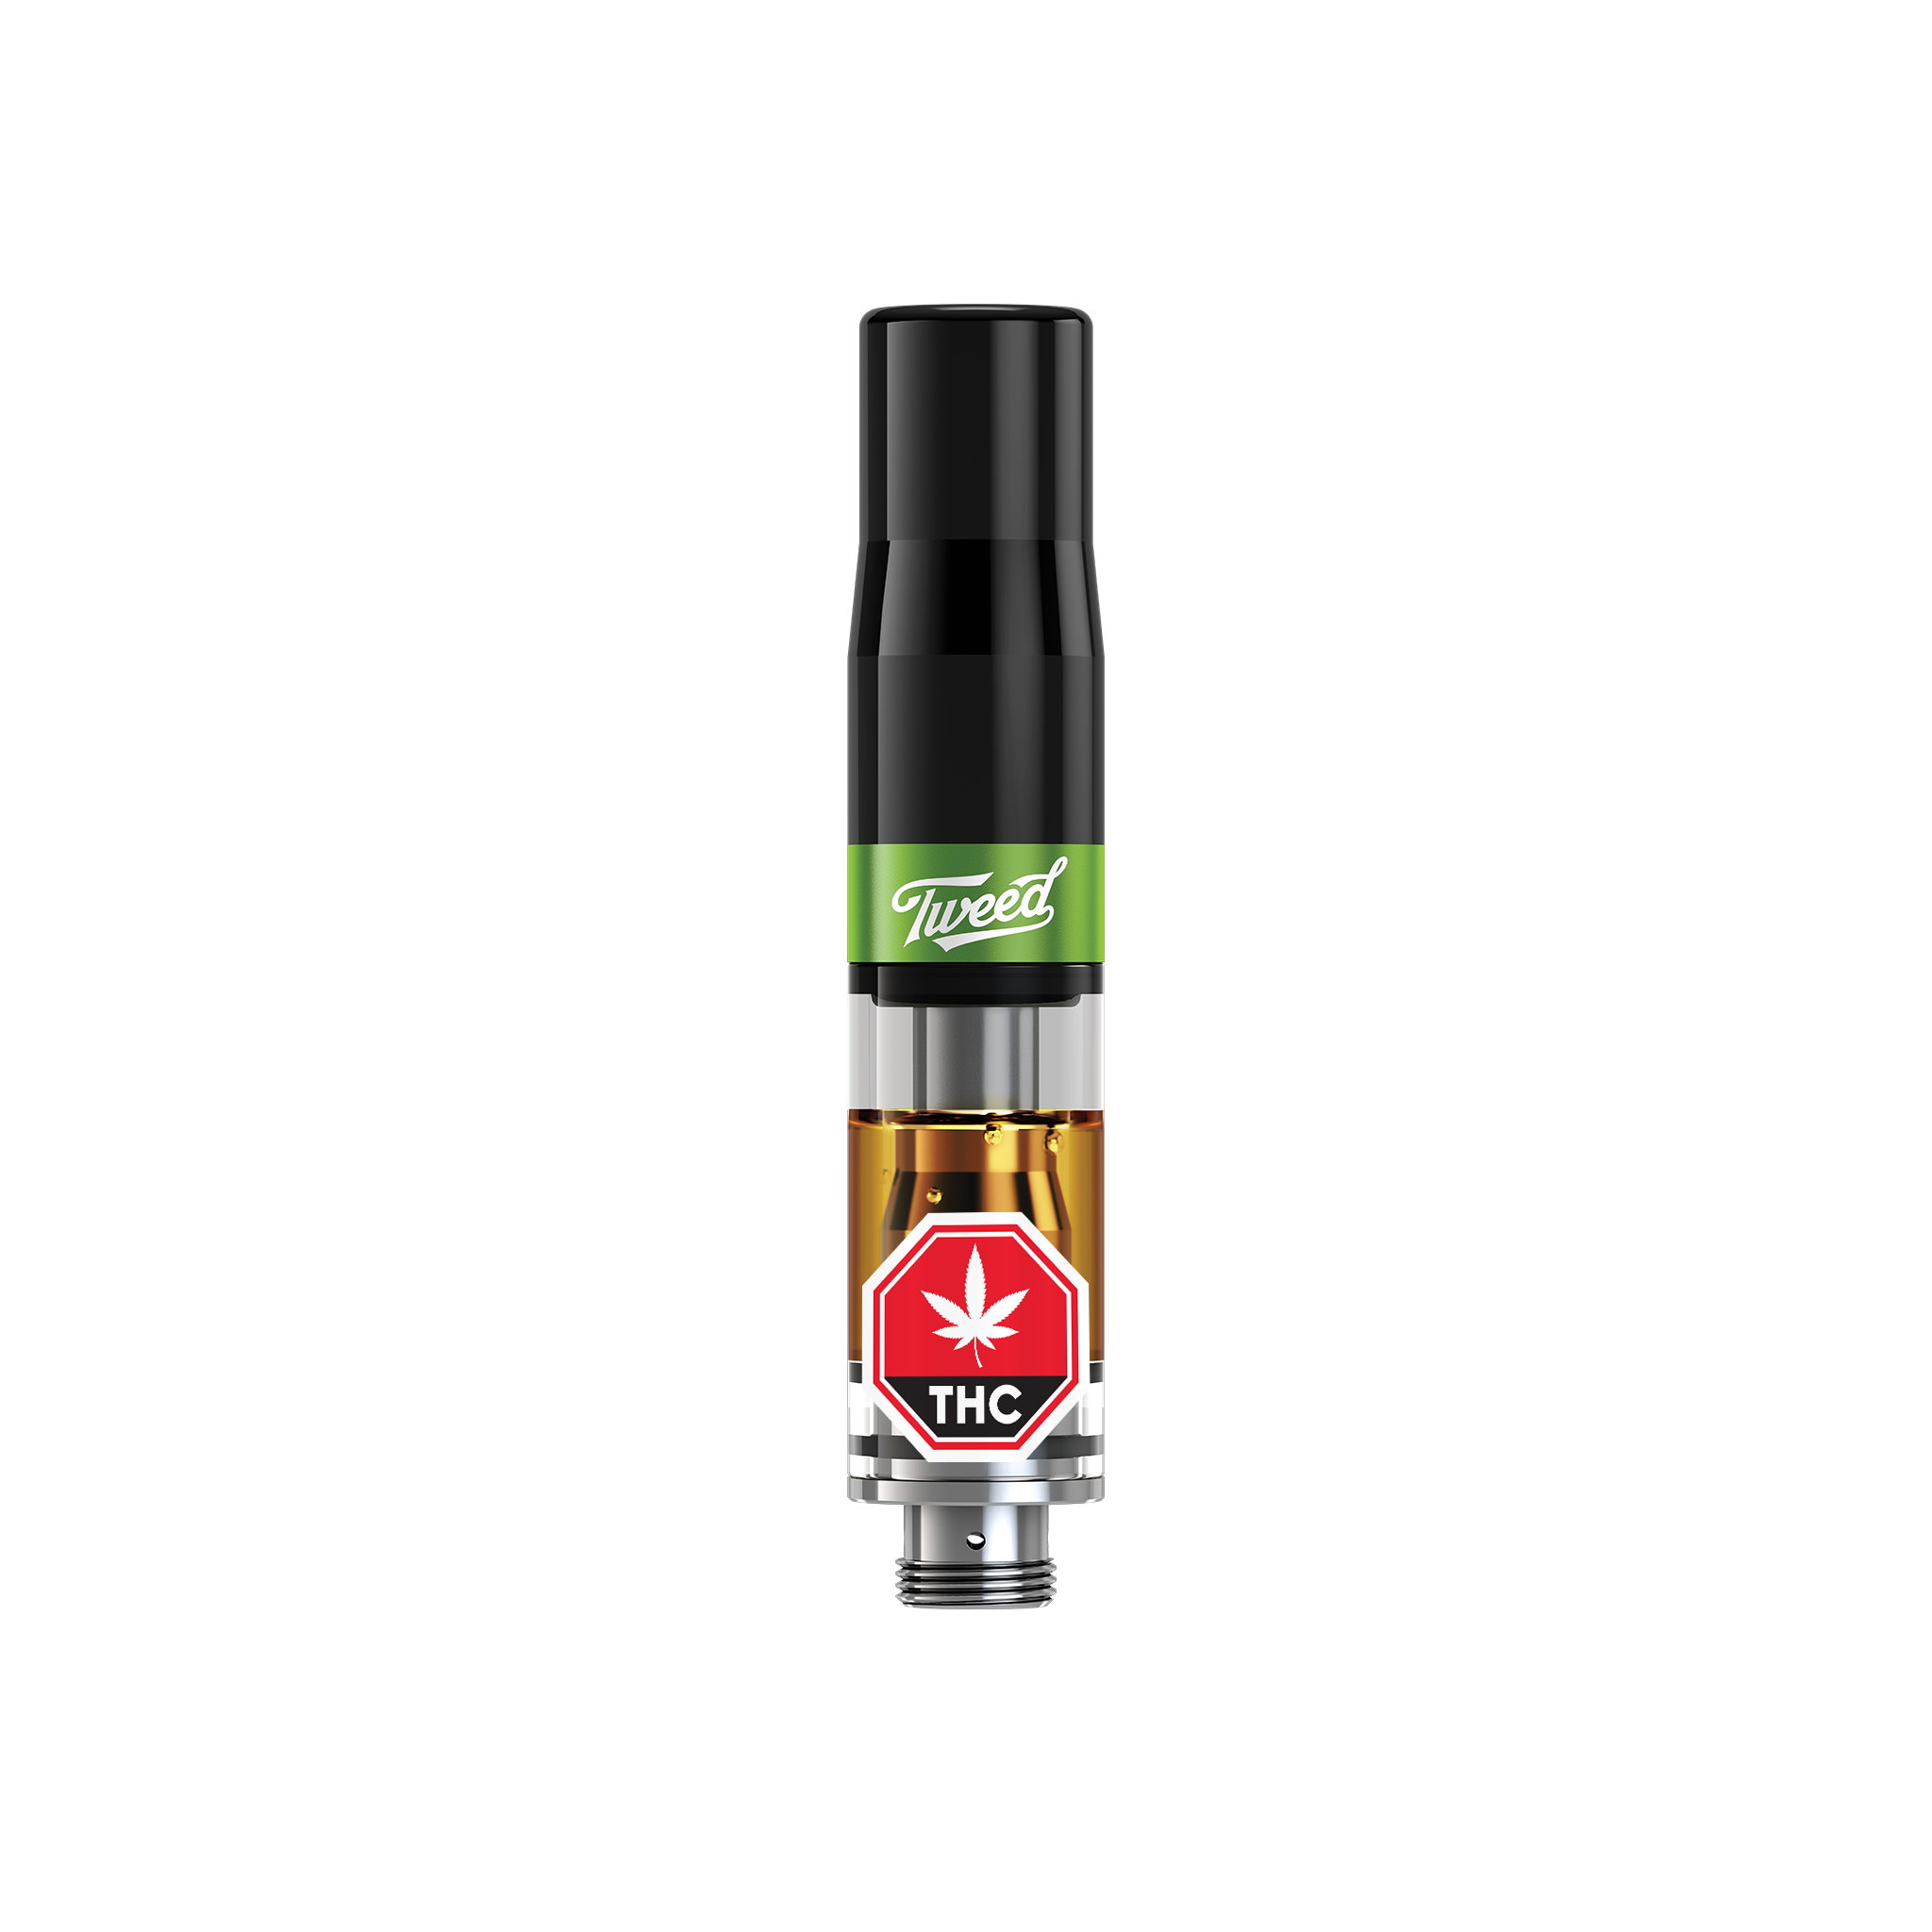 Tweed Houndstooth Vape Cartridge